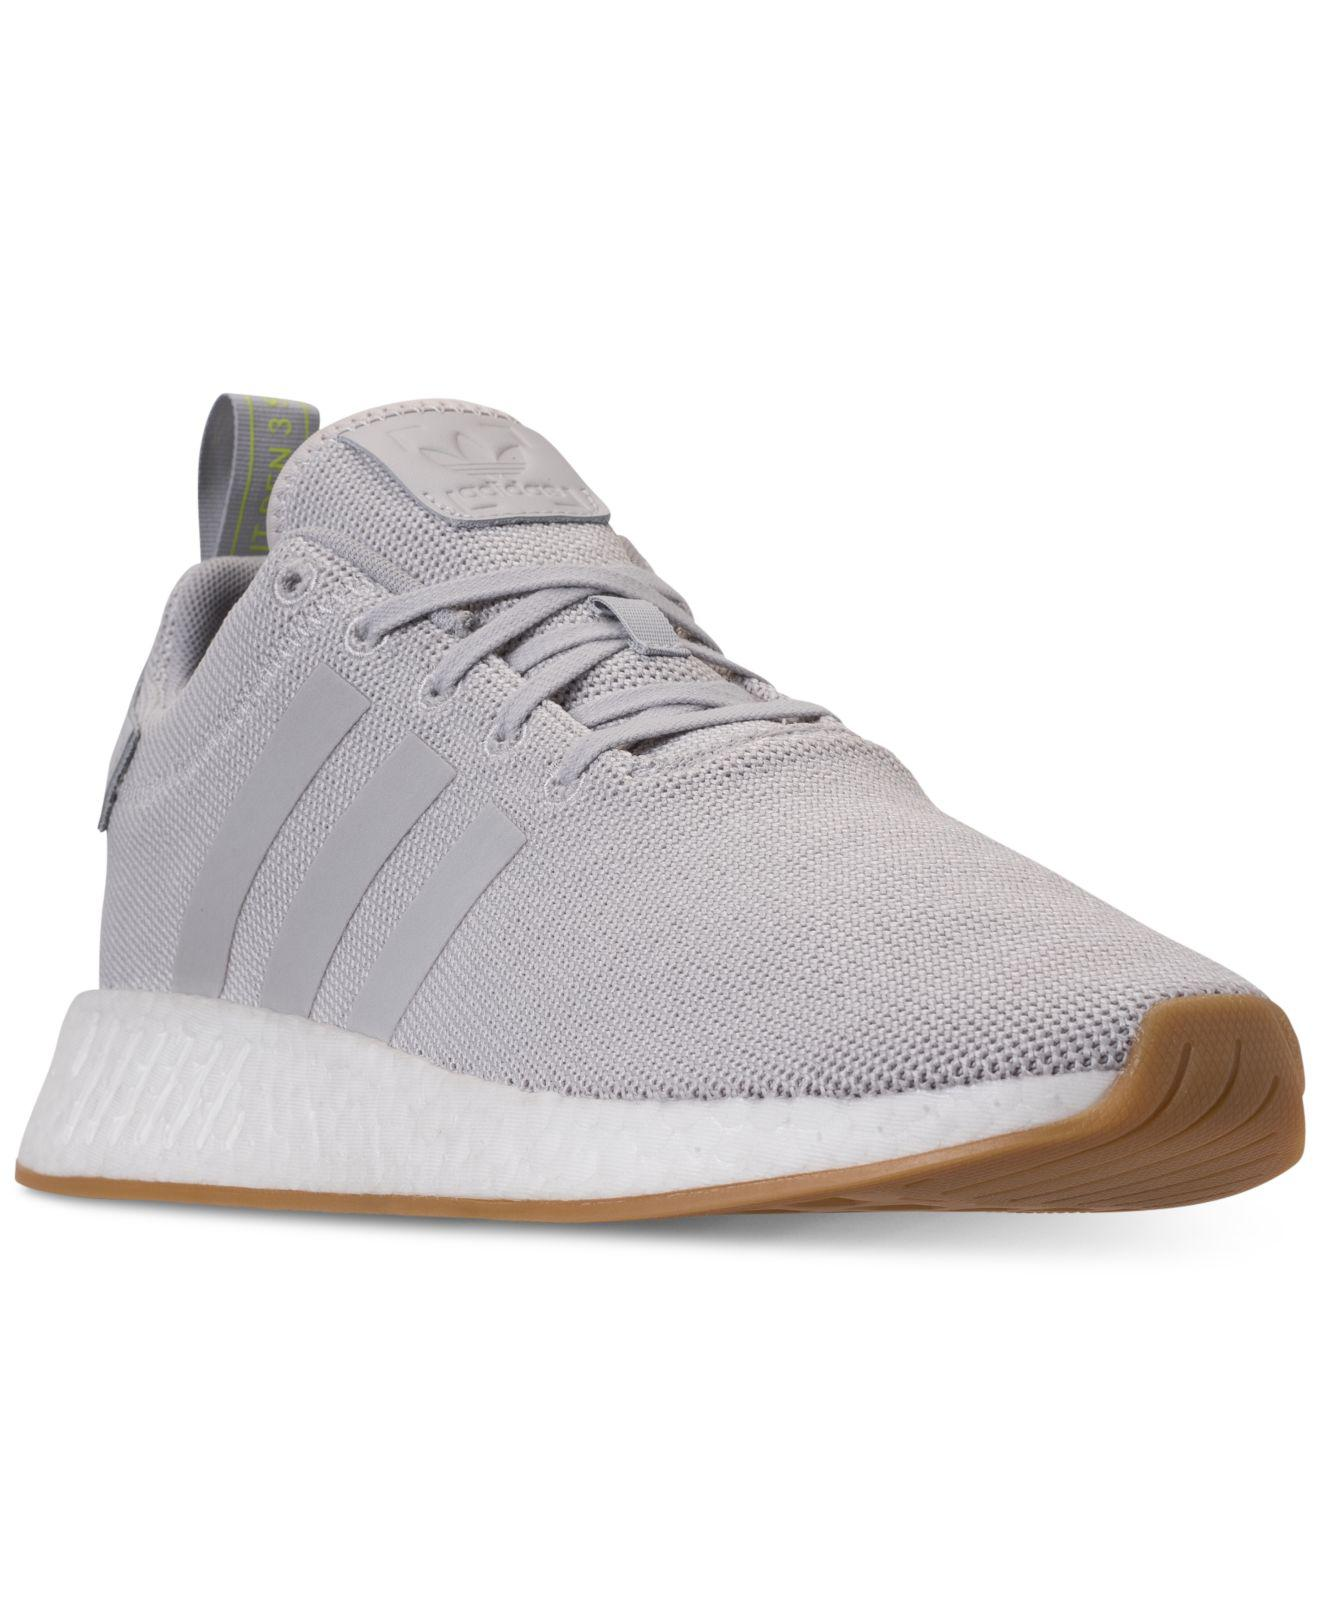 b9da6aee2 Lyst - adidas Nmd R2 Casual Sneakers From Finish Line in Gray for Men